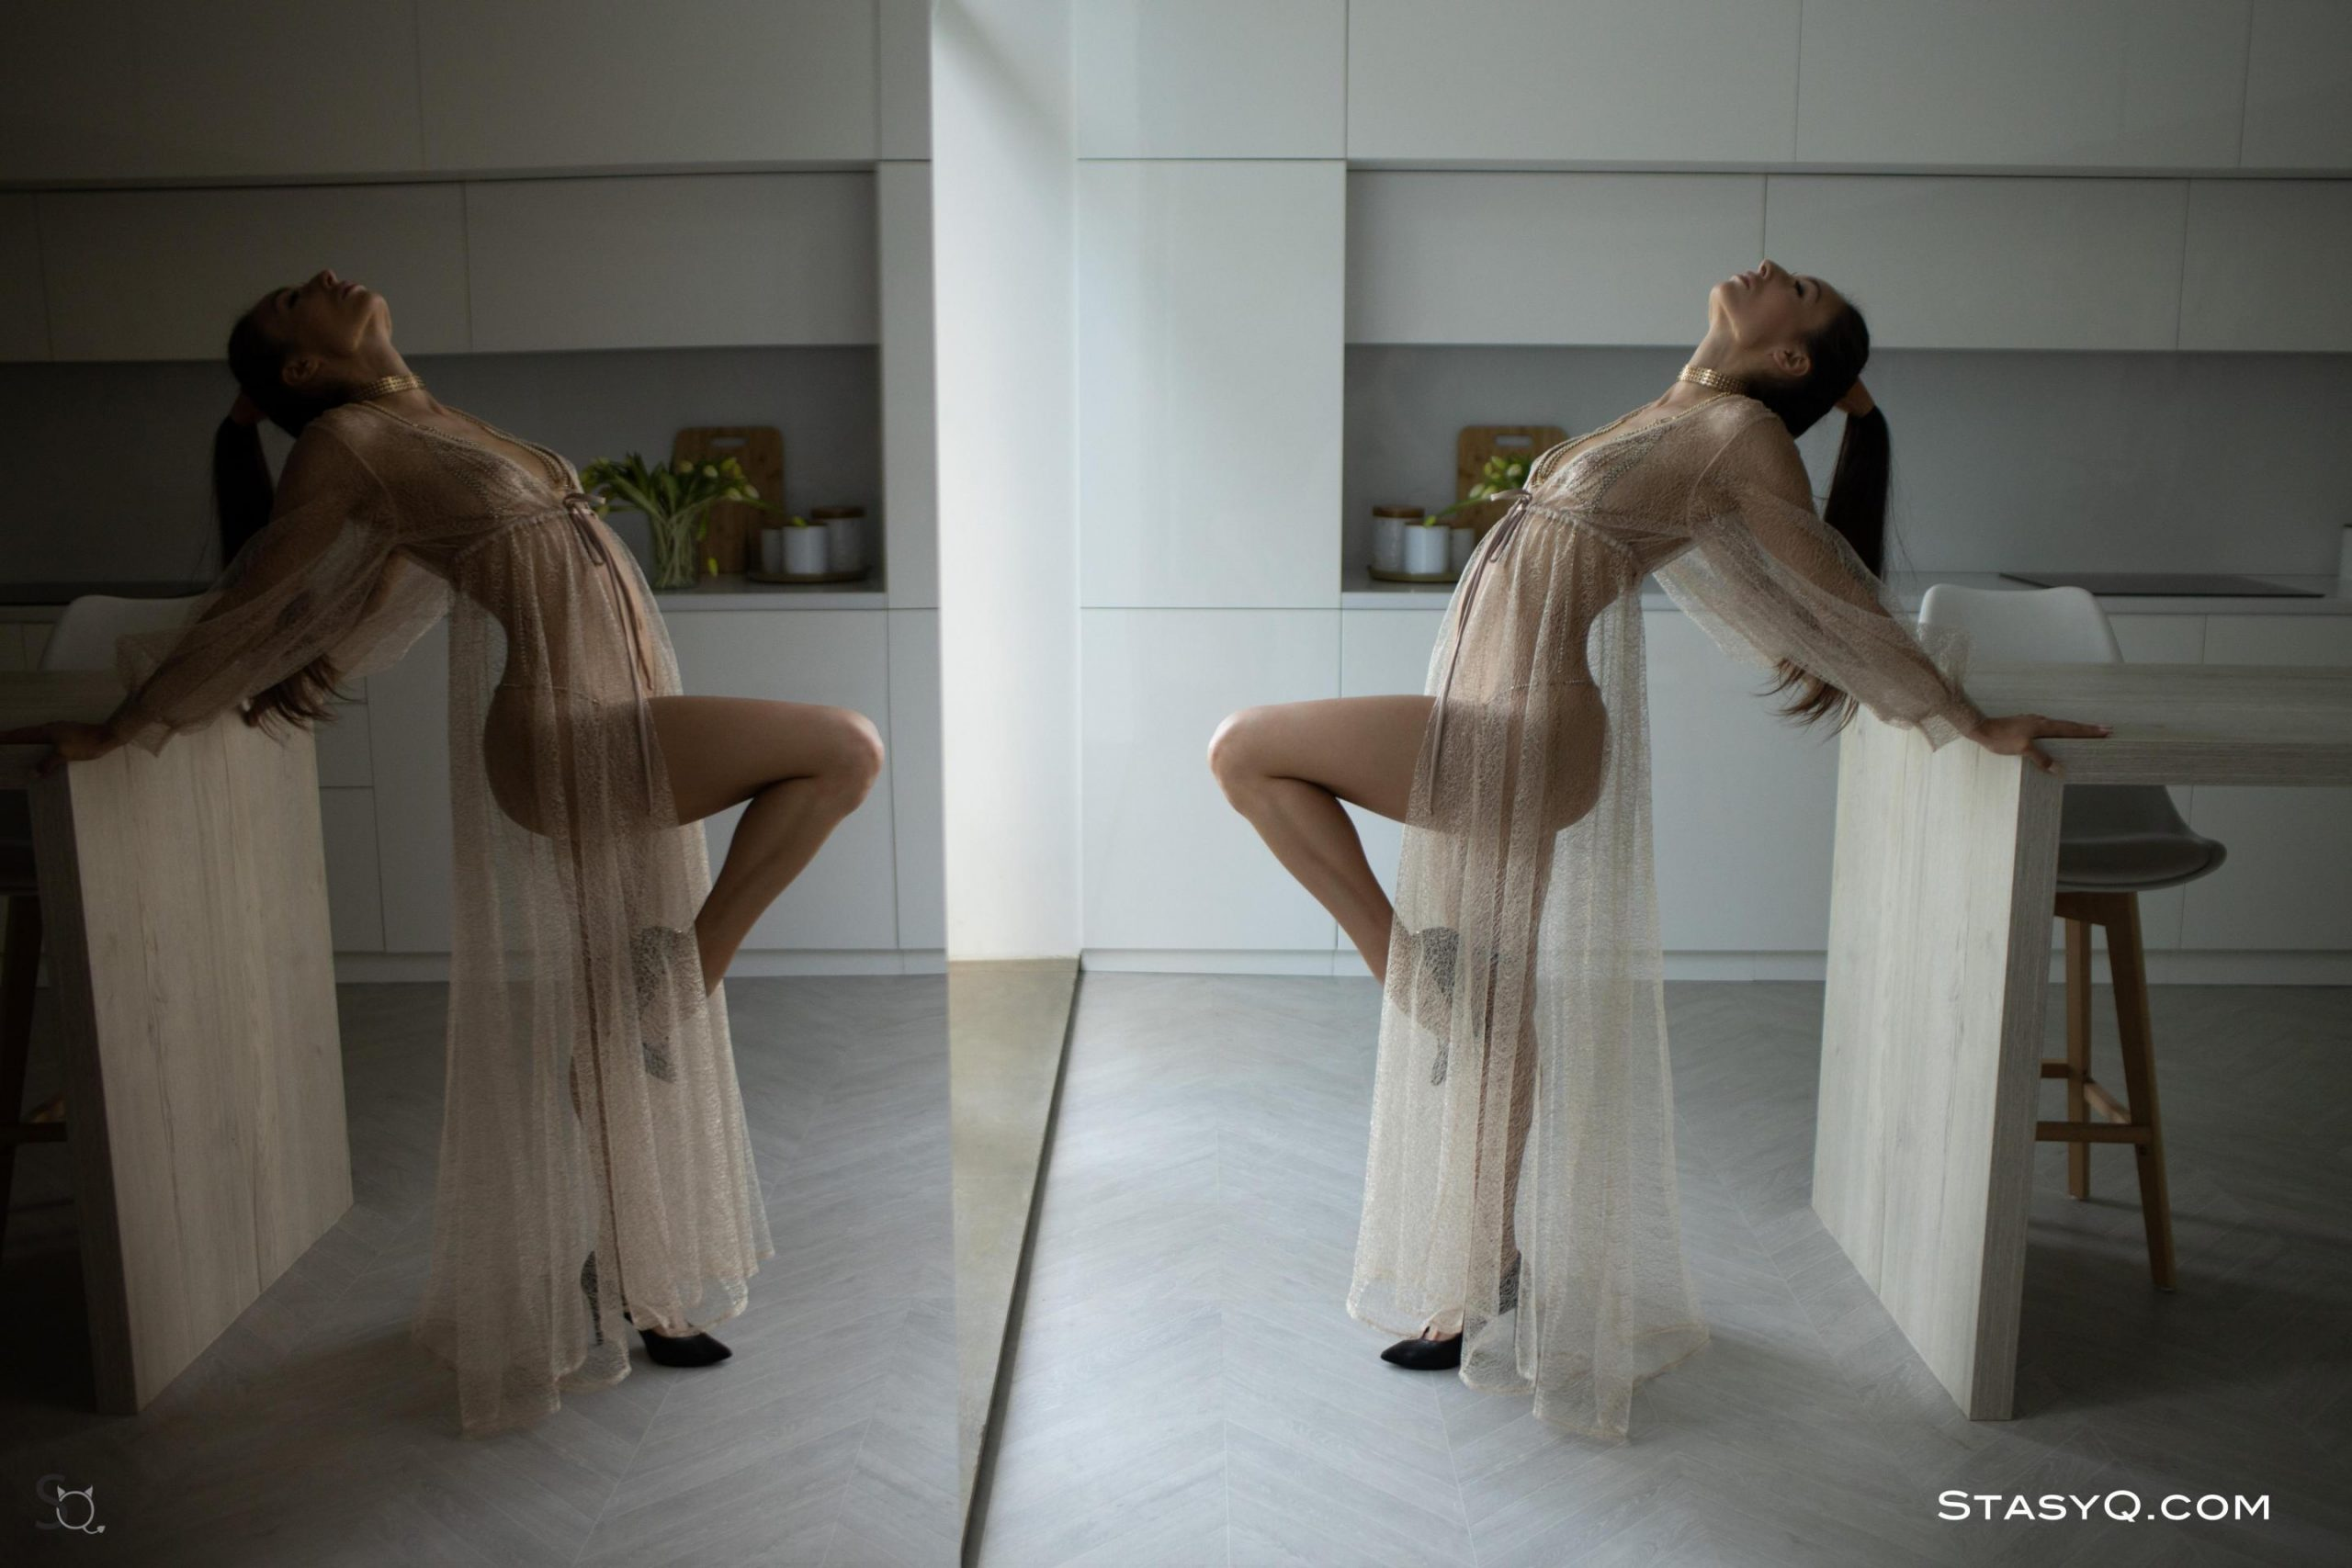 CourtneyQ giving an elegant pose in her long see through dress for StasyQ